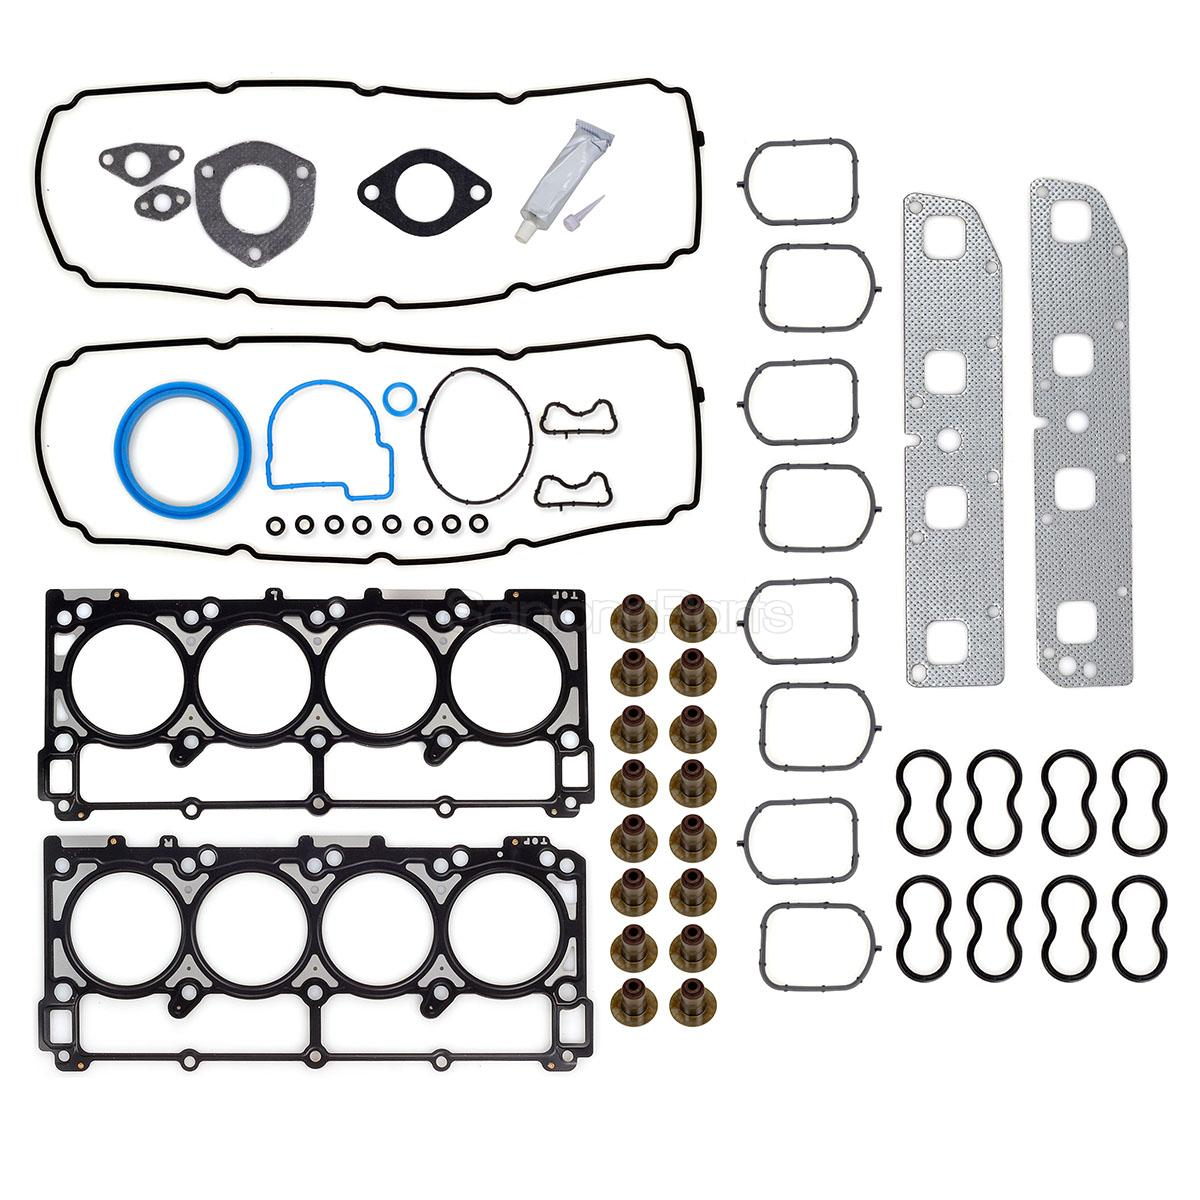 Full Engine Head Gasket Set Fits 03-08 Dodge Ram 1500 2500